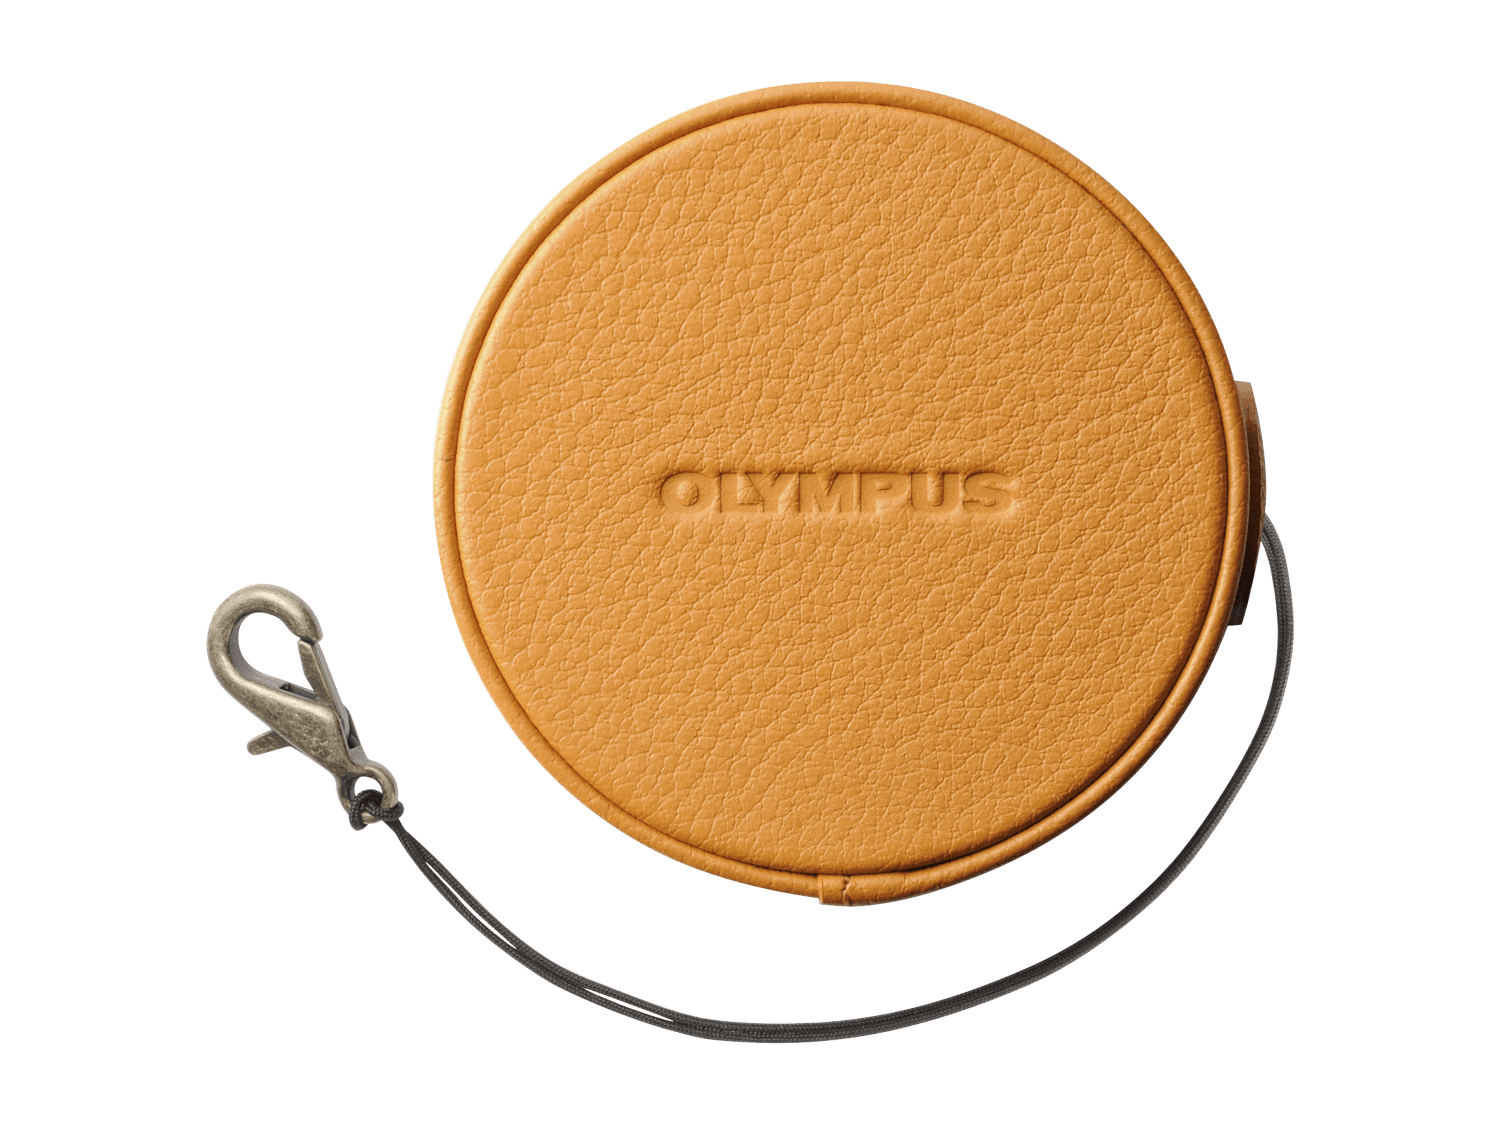 Olympus LC-60.5GL LBR Genuine Leather Lens Cover (60.5 mm) - light brown - Olympus 9.03.04.12.127